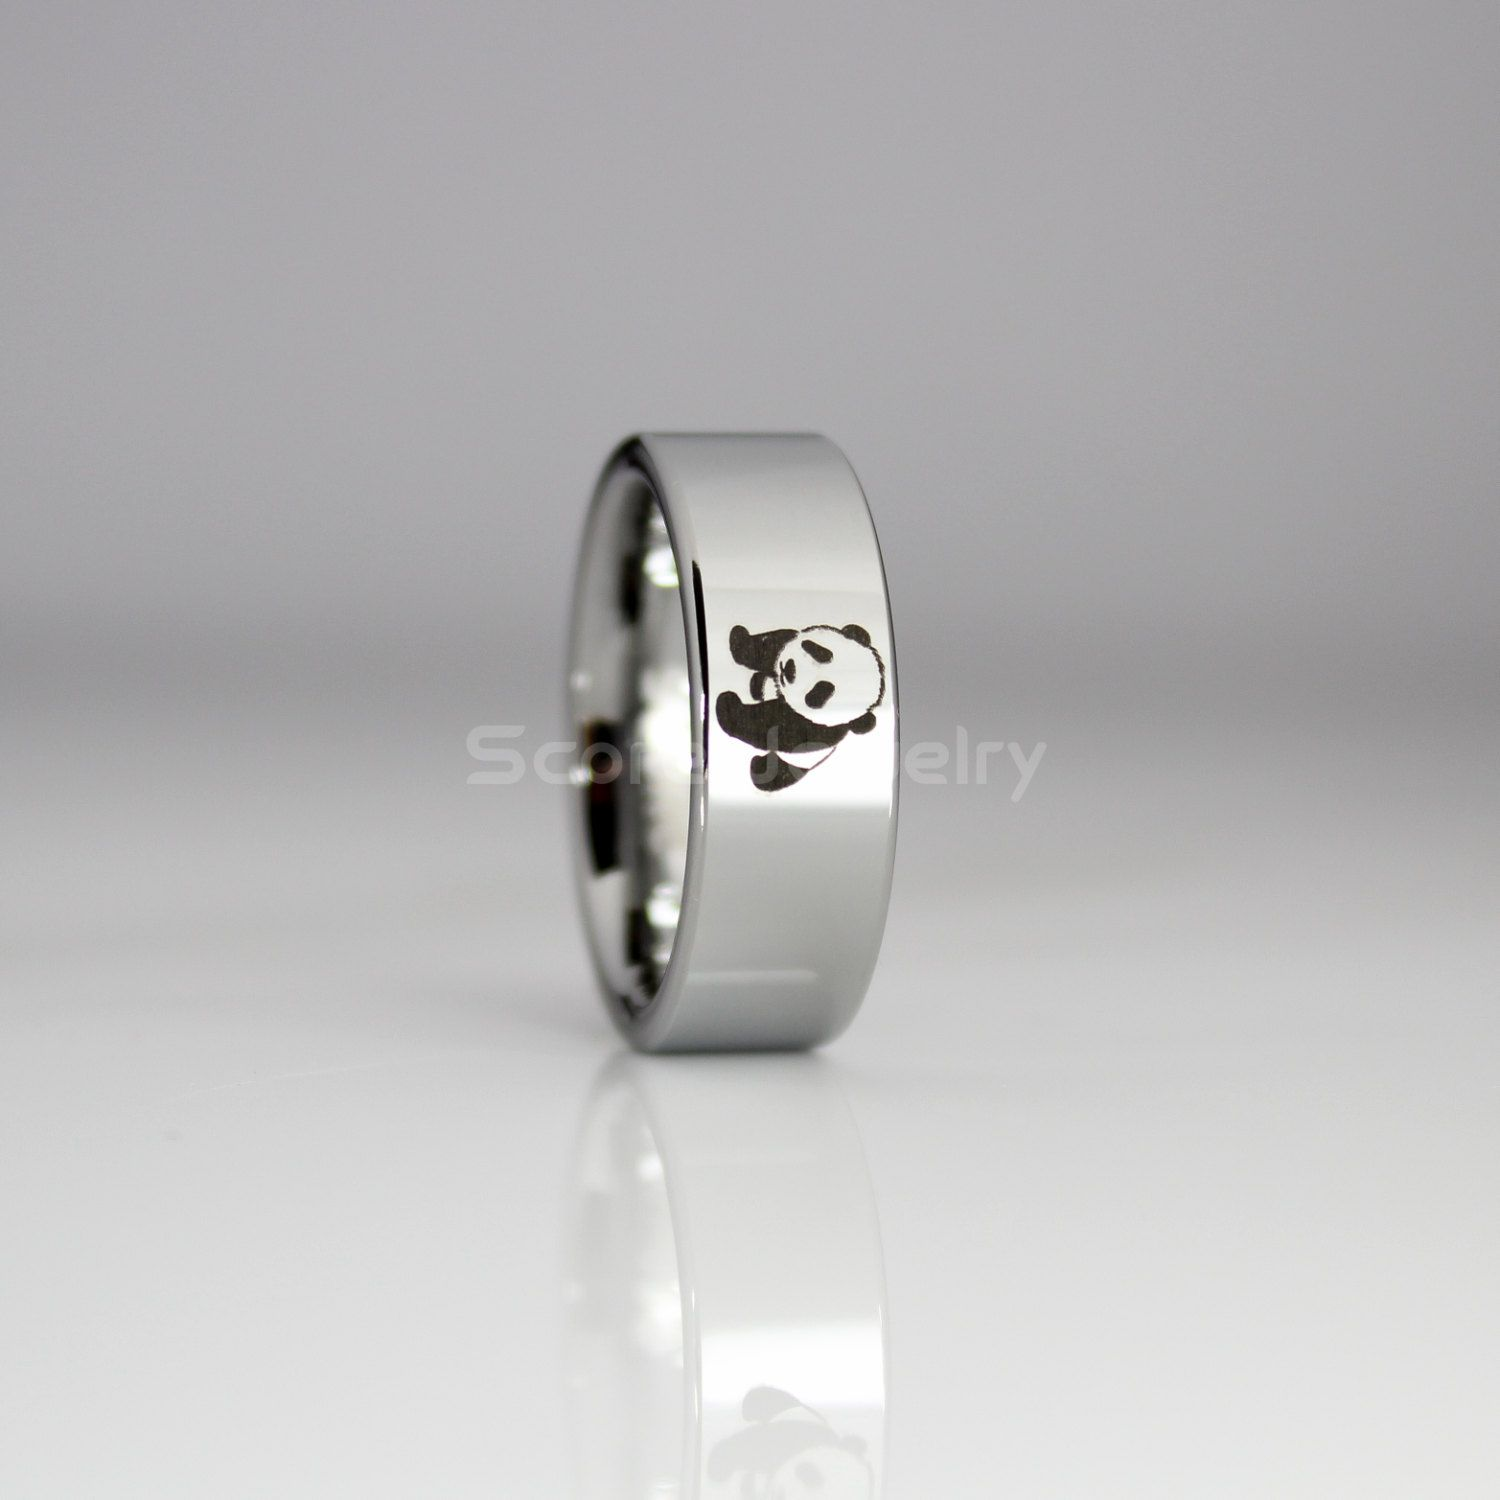 Find This Pin And More On Wedding Engagement Ring Sets By Scorejewelry